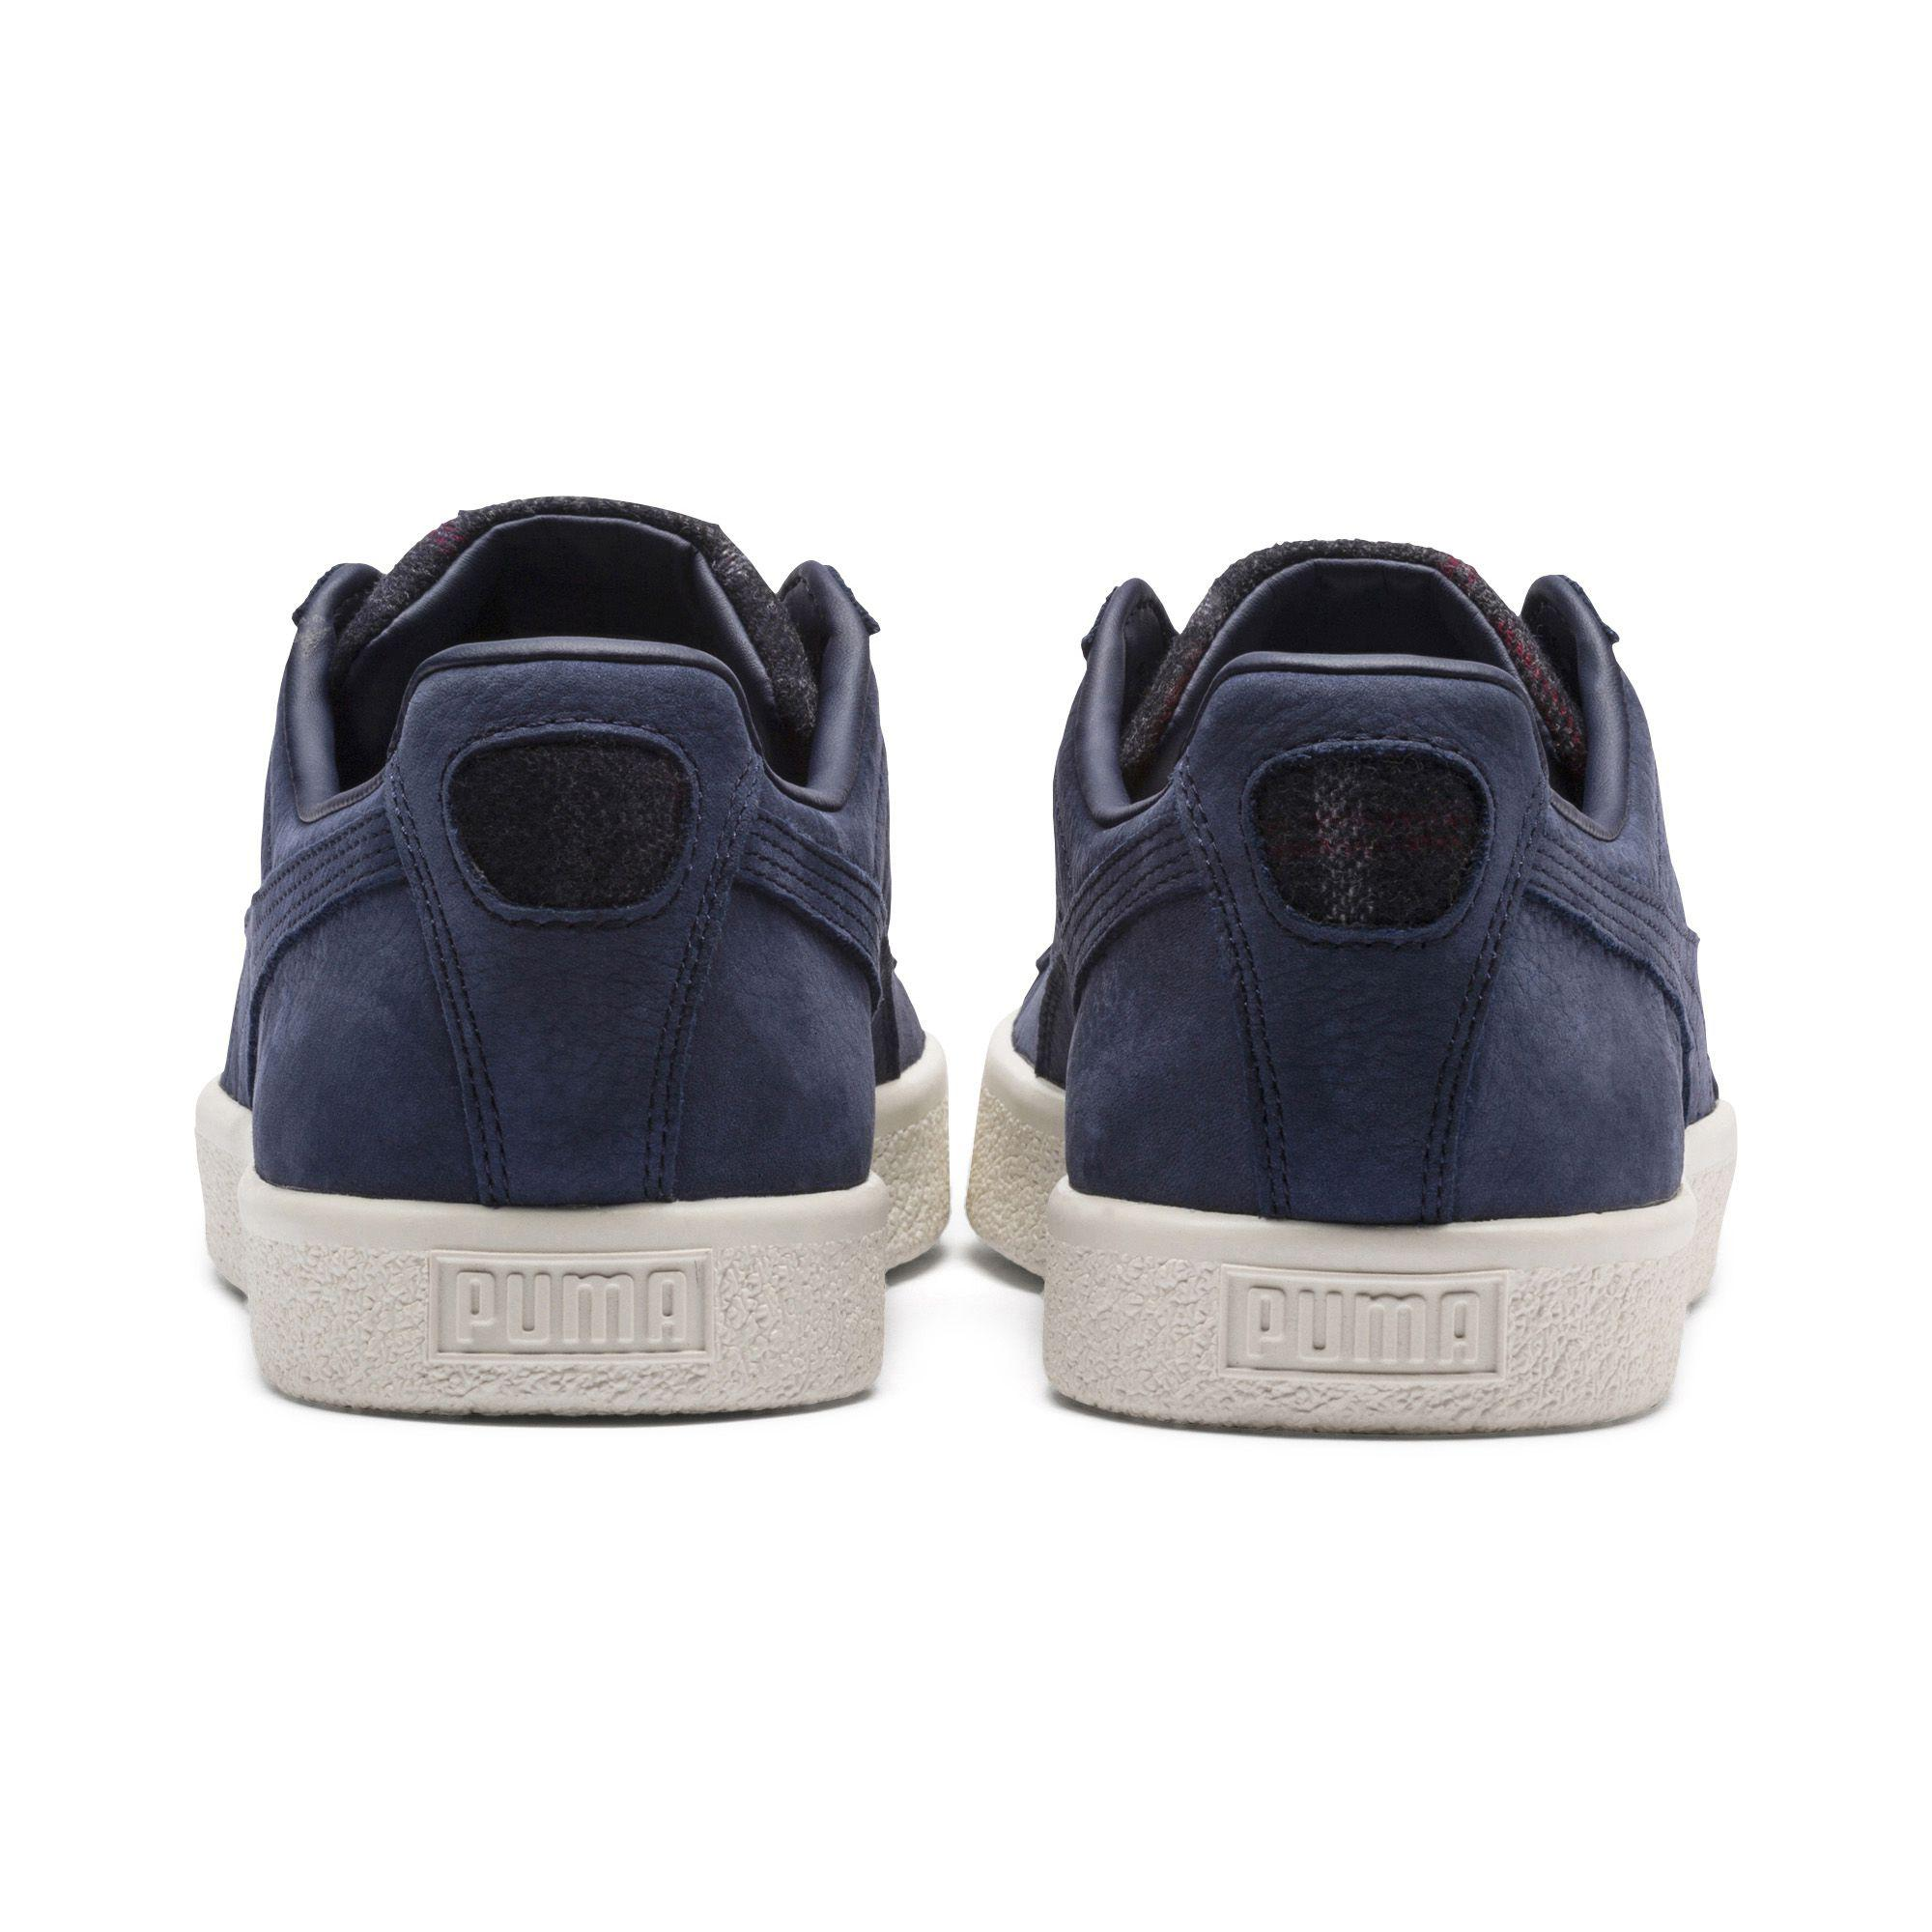 Lyst - PUMA Clyde Plaid Sneakers in Blue for Men aed7a7744